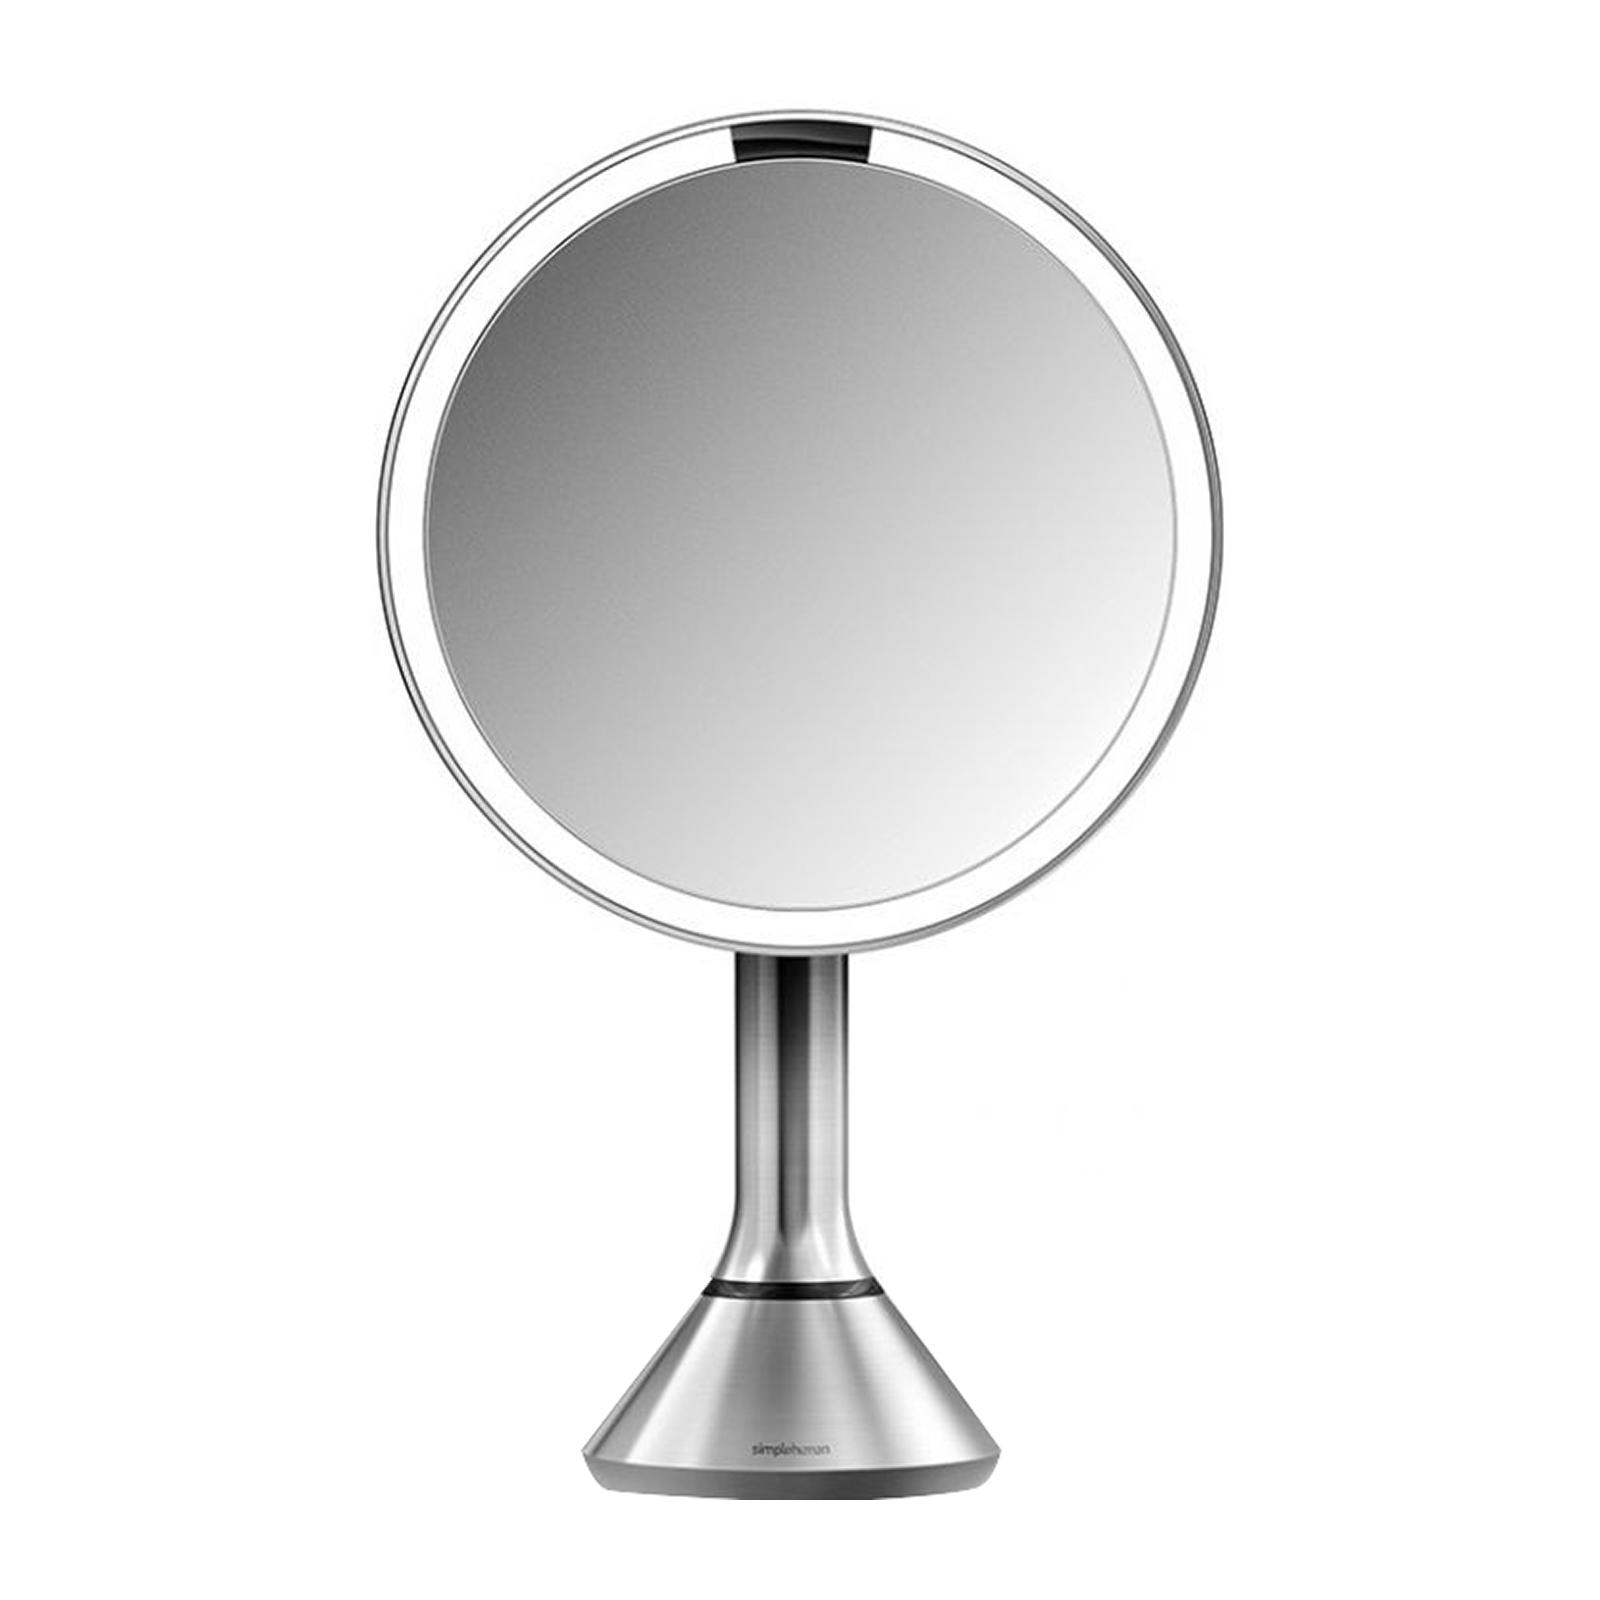 10 Vanity Mirrors With Light You Need To Spruce Up Your